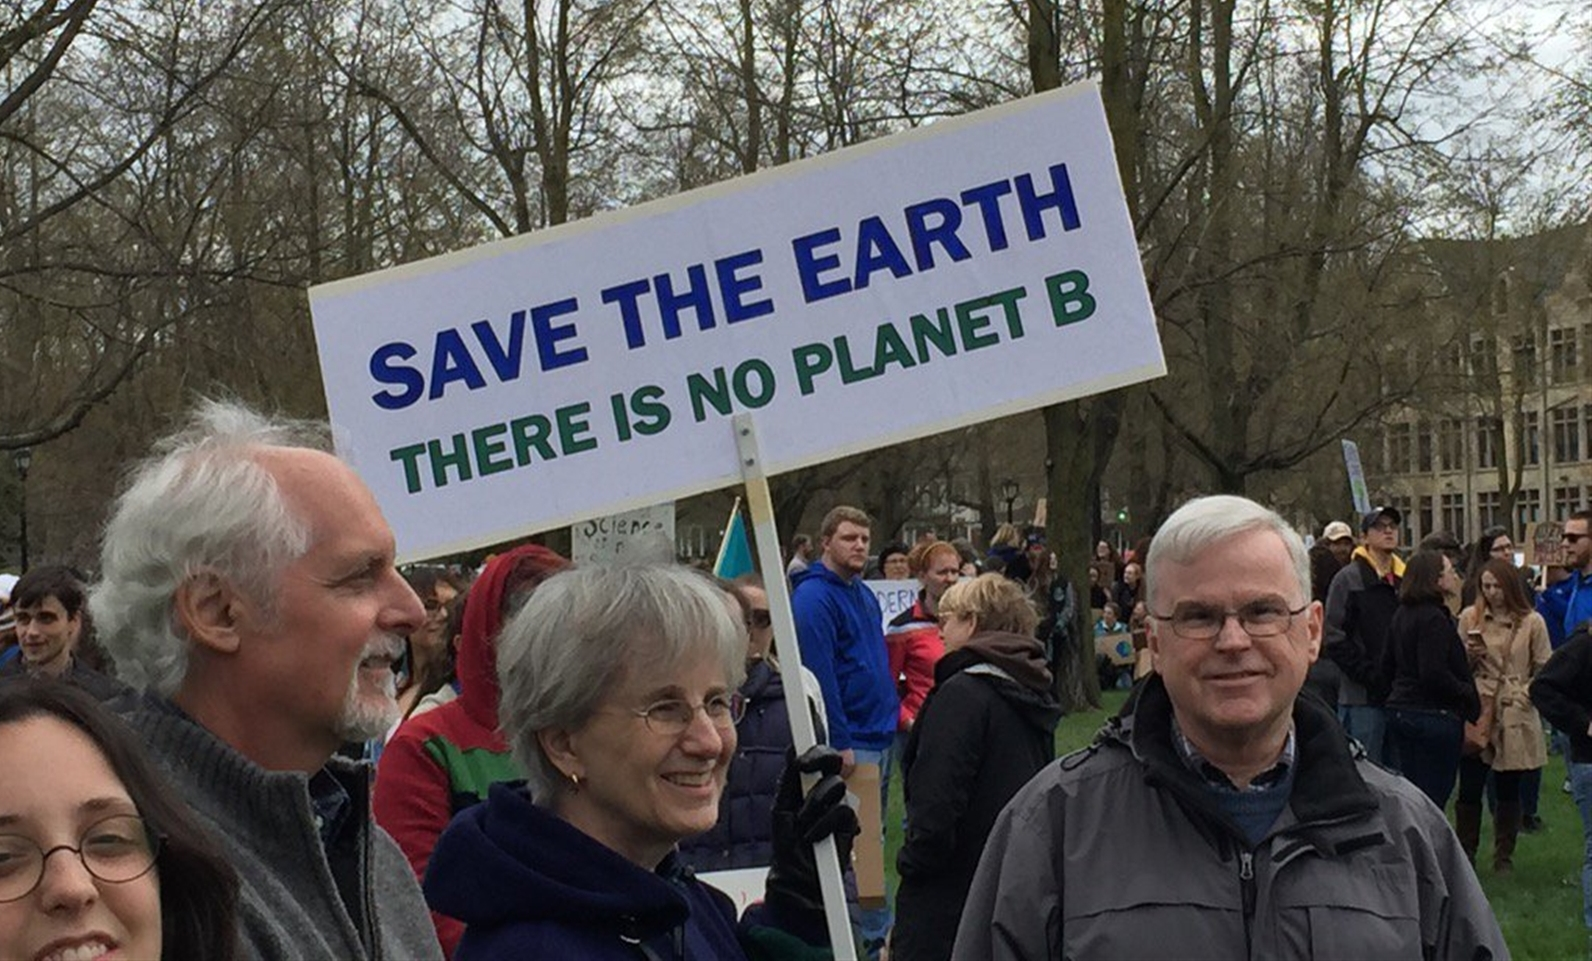 A couple thousand people joined the local March for Science on Saturday afternoon in Buffalo, many carrying creative signs. (Jay Rey/Buffalo News)